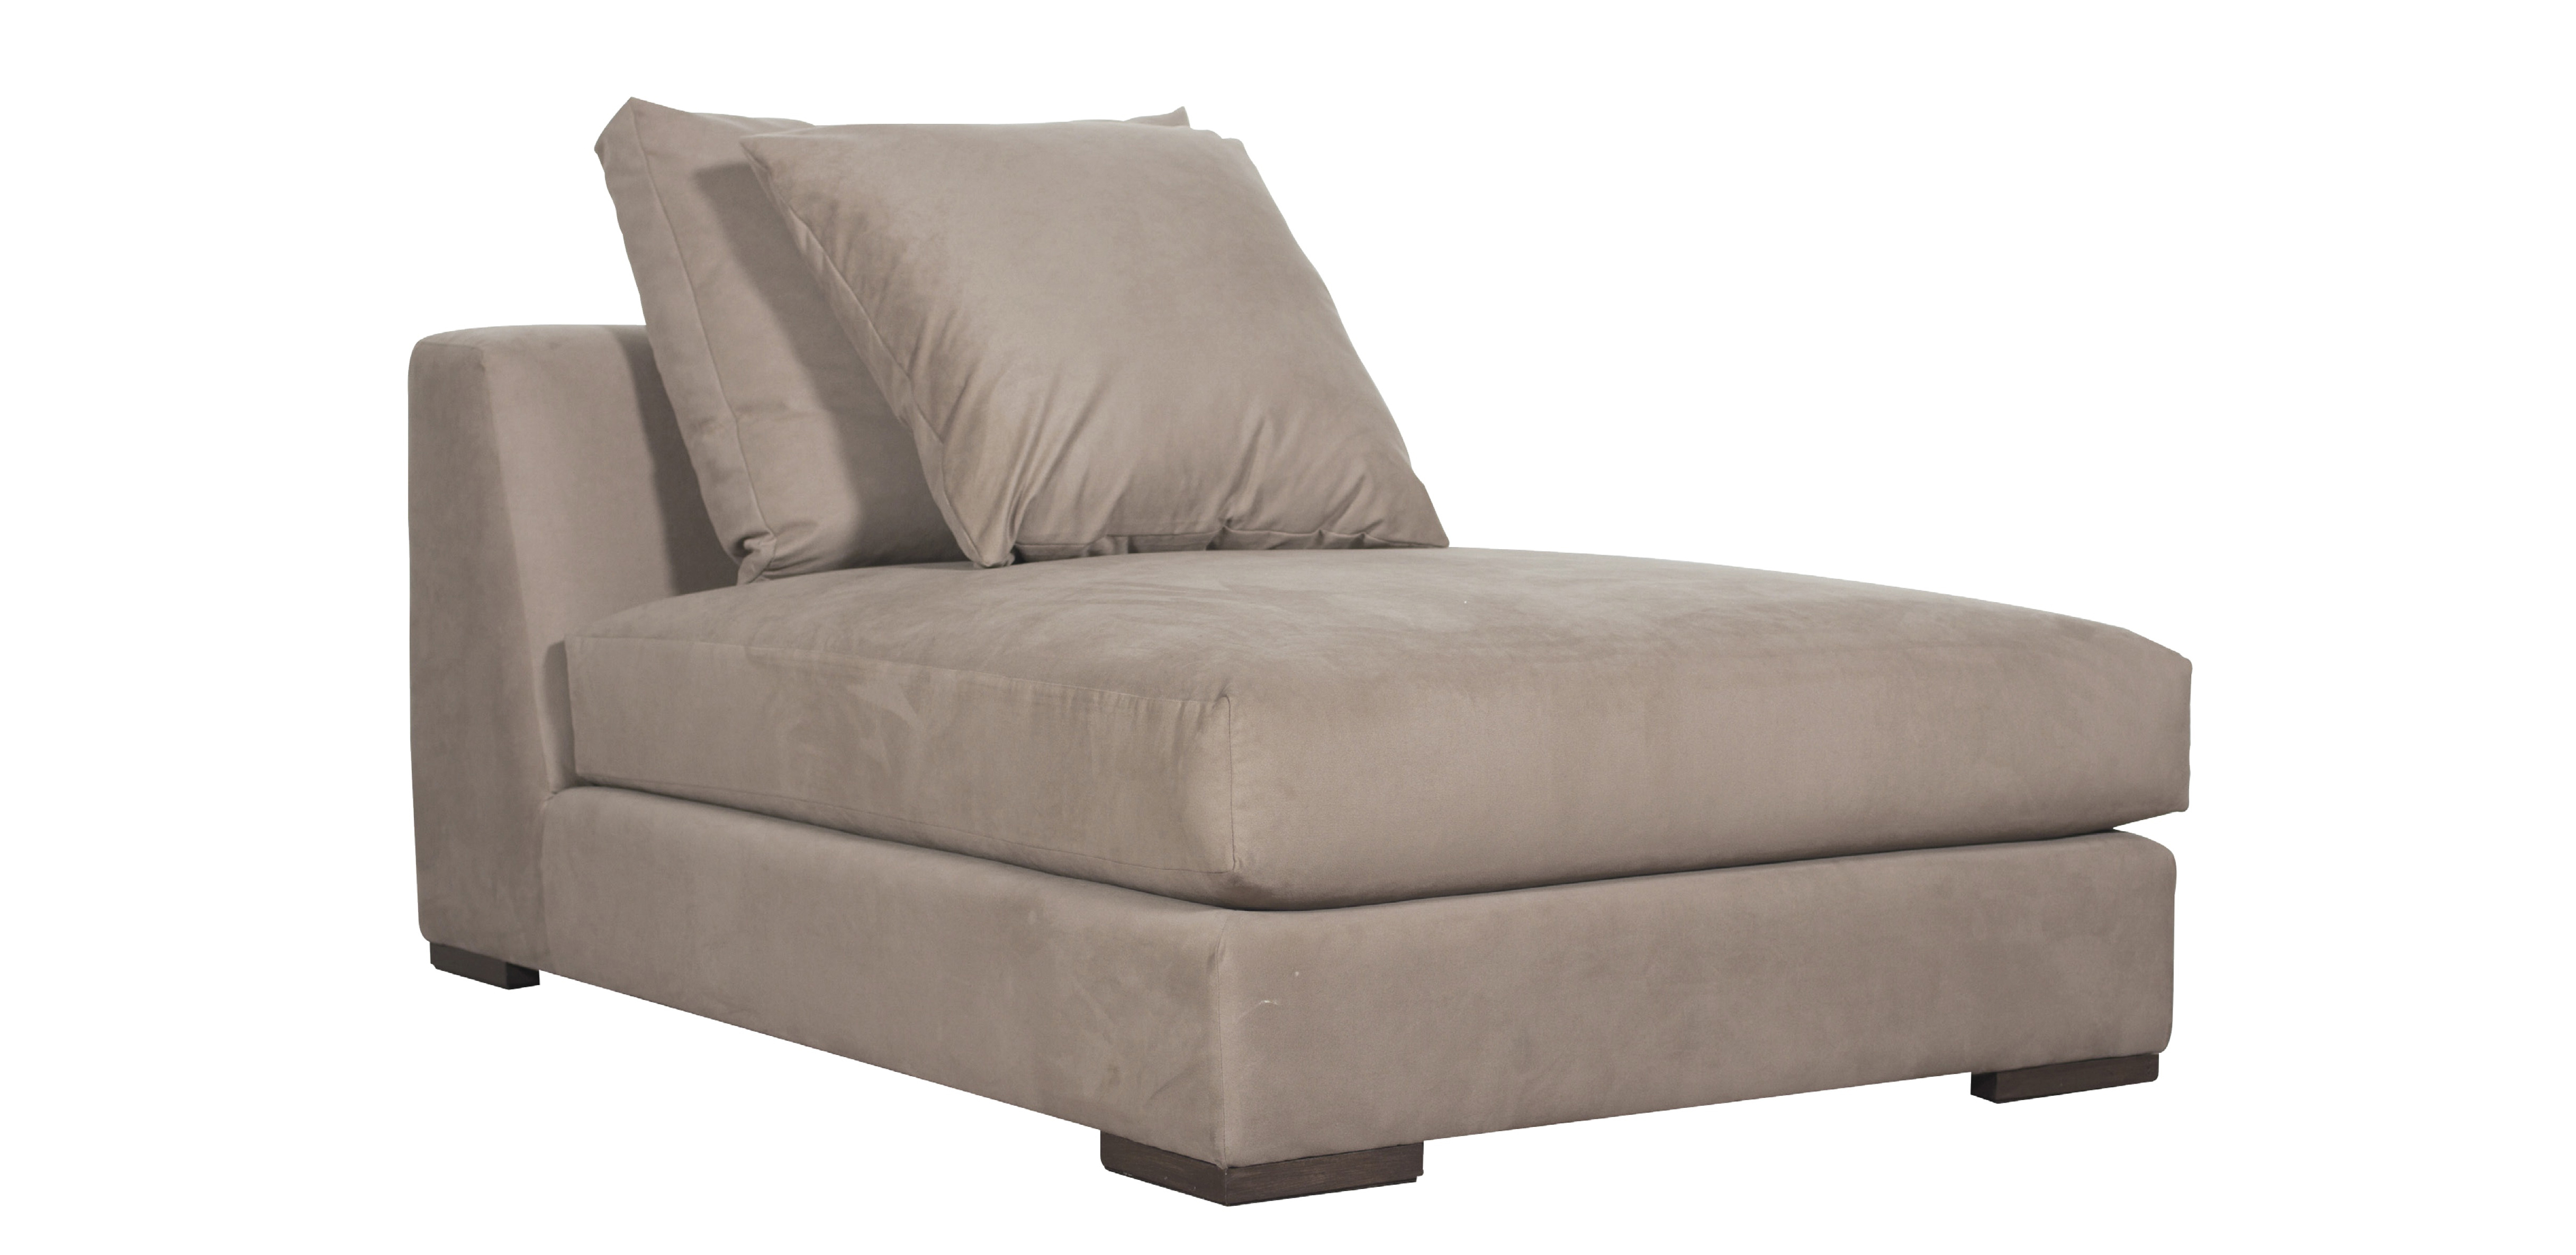 VERONA CHAISE LONGUE WITH NO ARMS